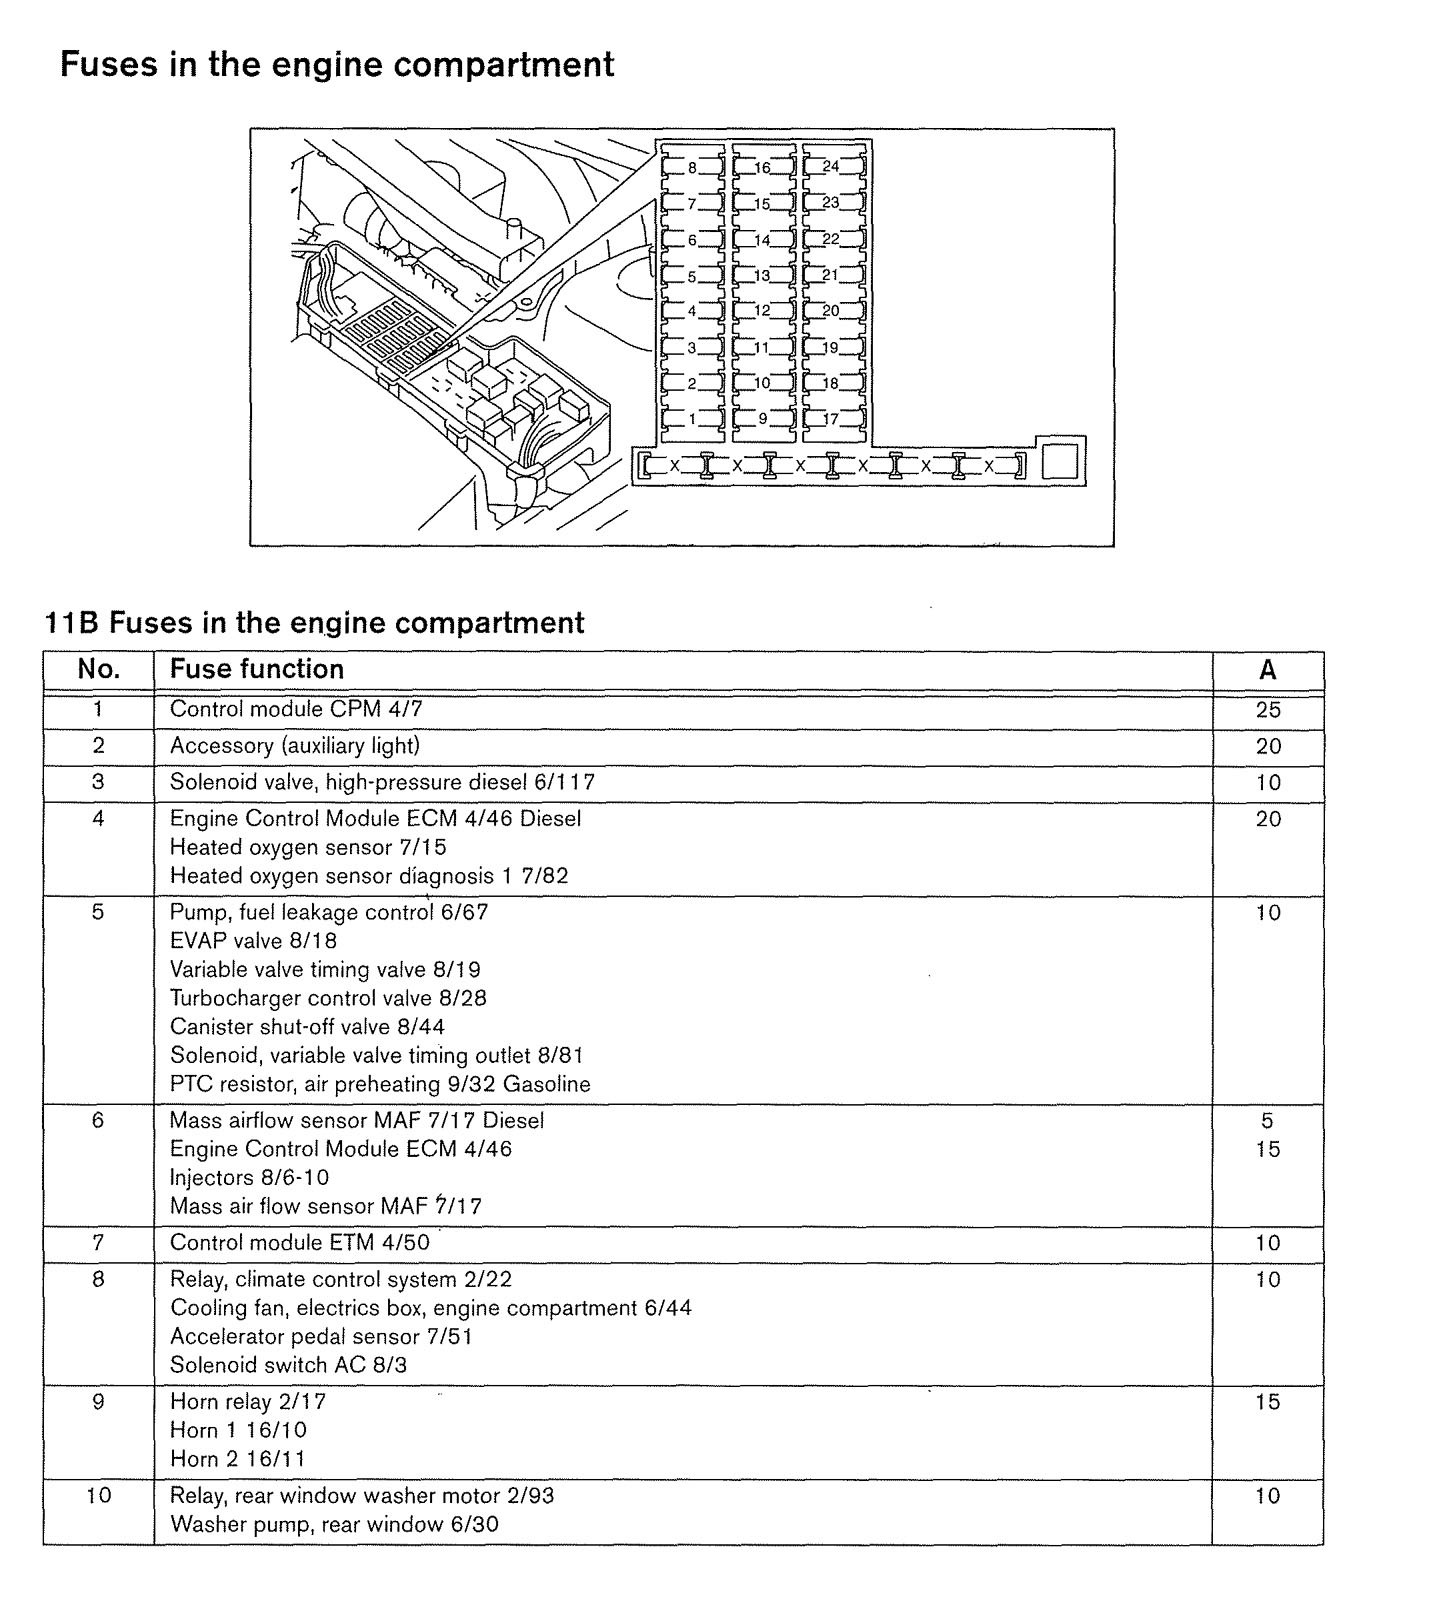 2002 Bmw R1150 Gs Instrument Cluster Fuse Box Diagram